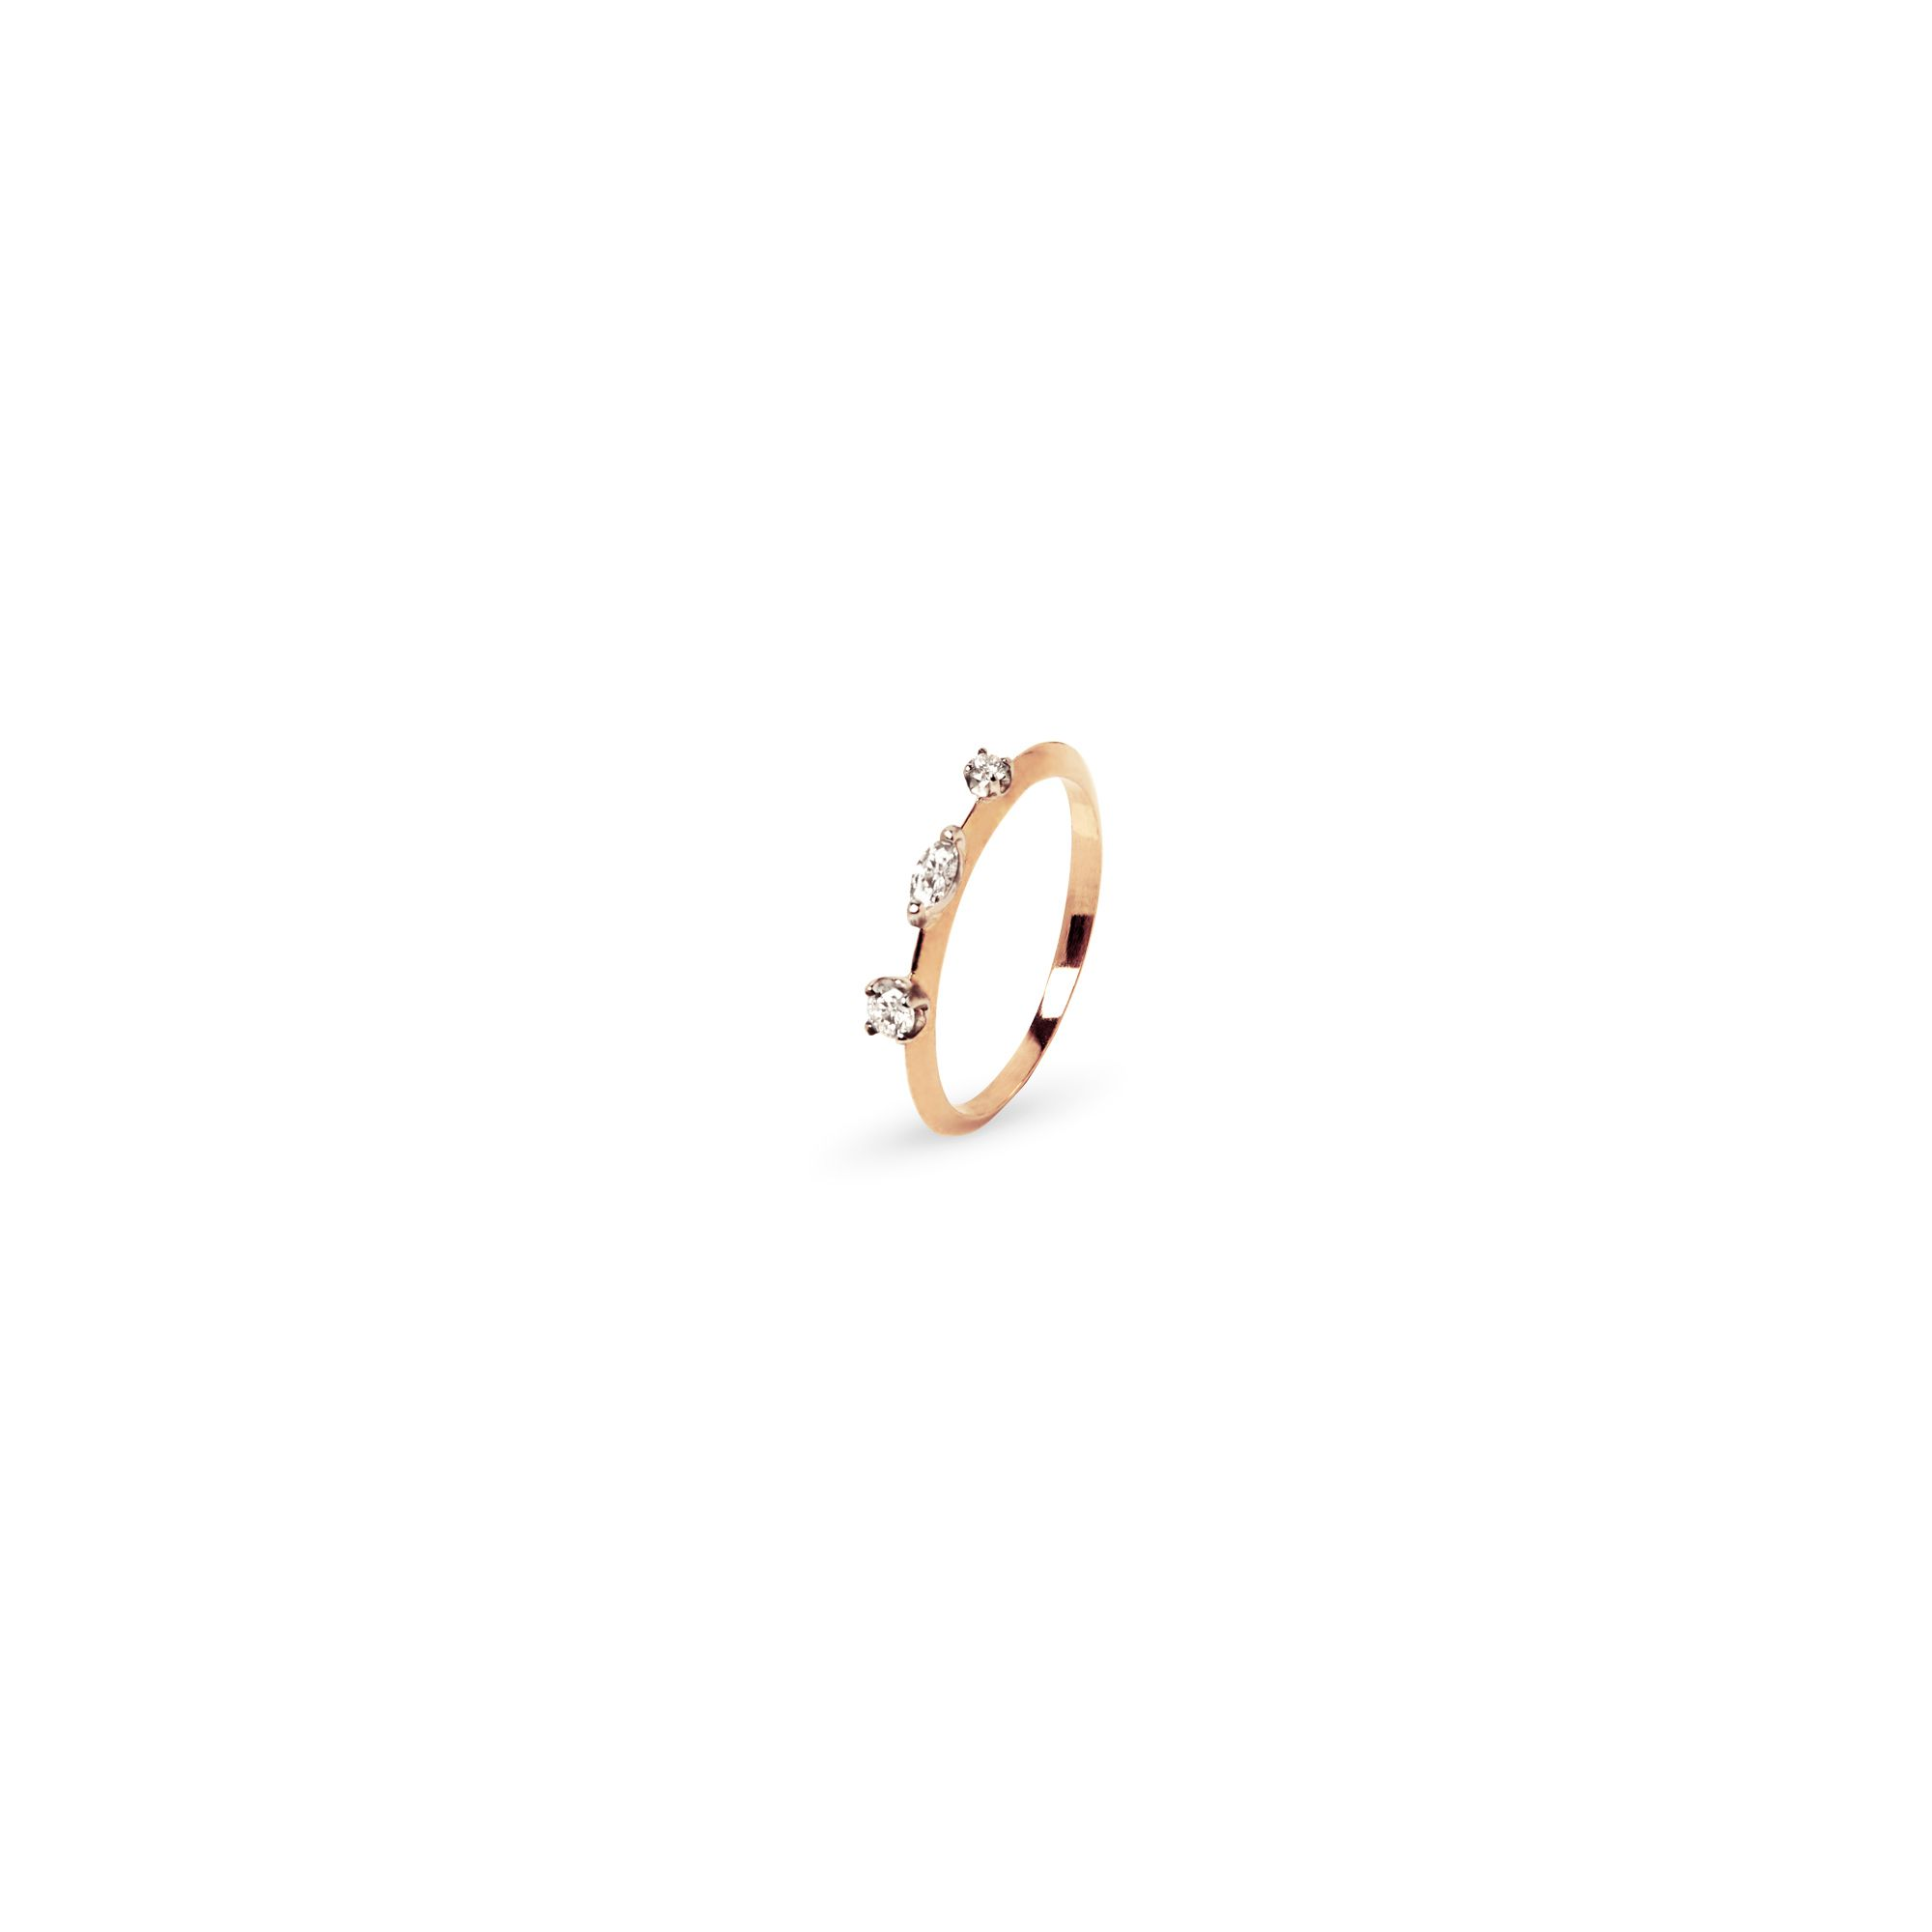 Rose gold 'Balance' ring Ring in rose gold and white diamonds